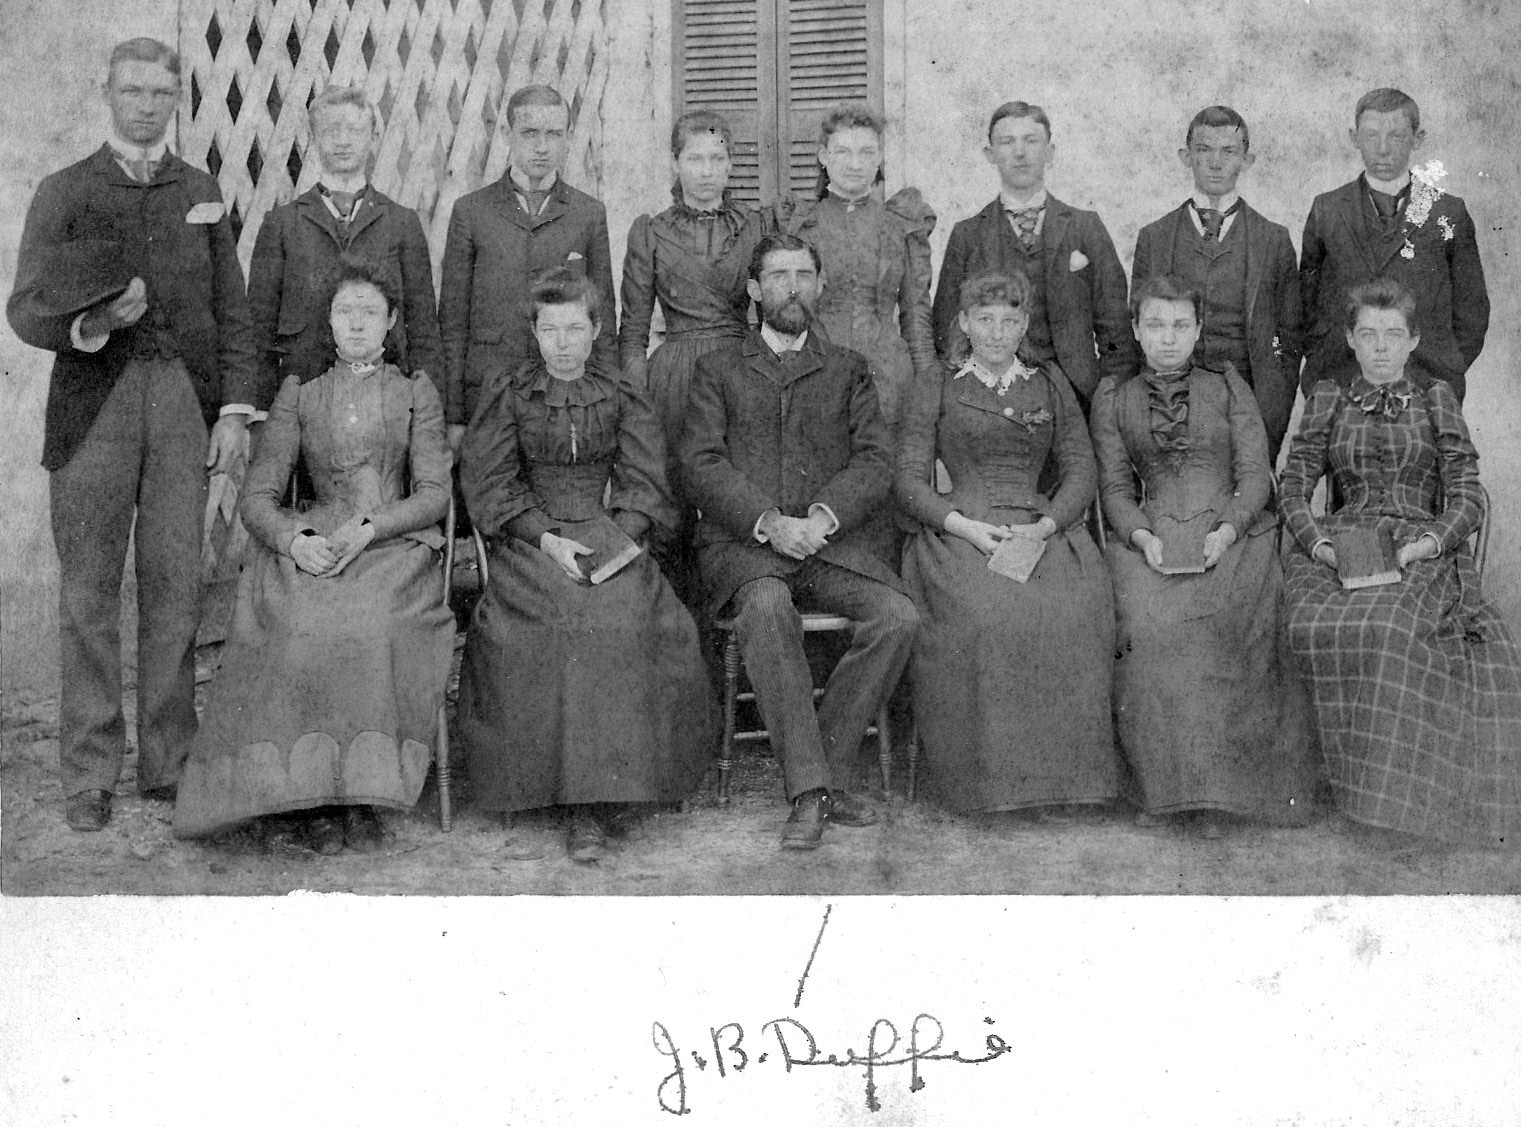 John Duffie, seated center, was the first elected superintendent of city schools.